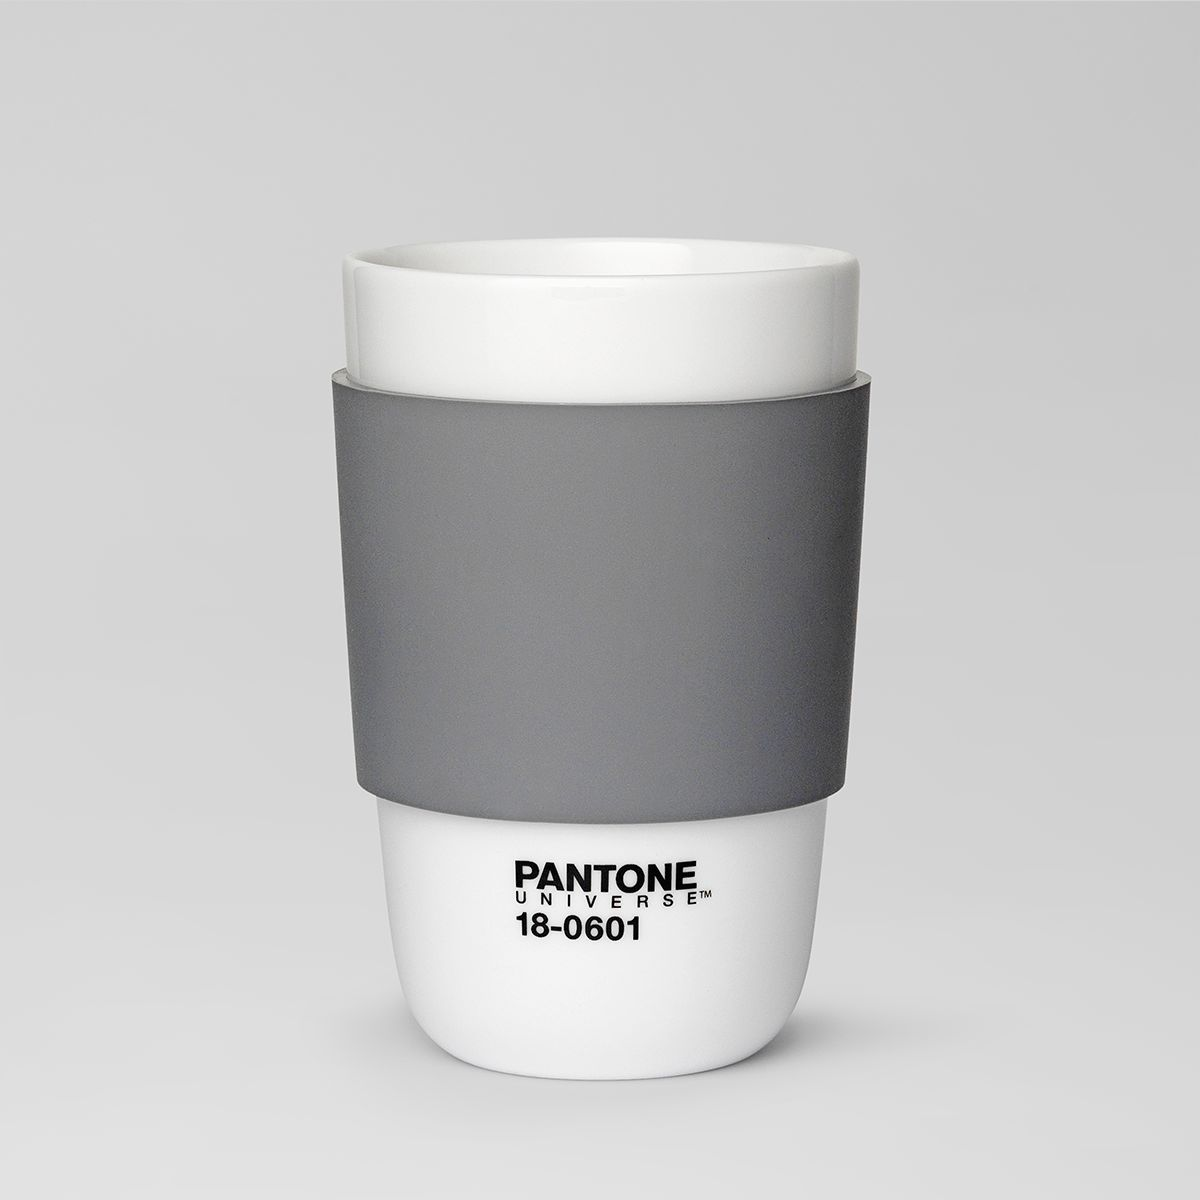 10102-PANTONE-Universe-Cup-Classic_Charcoal-Gray-18-0601